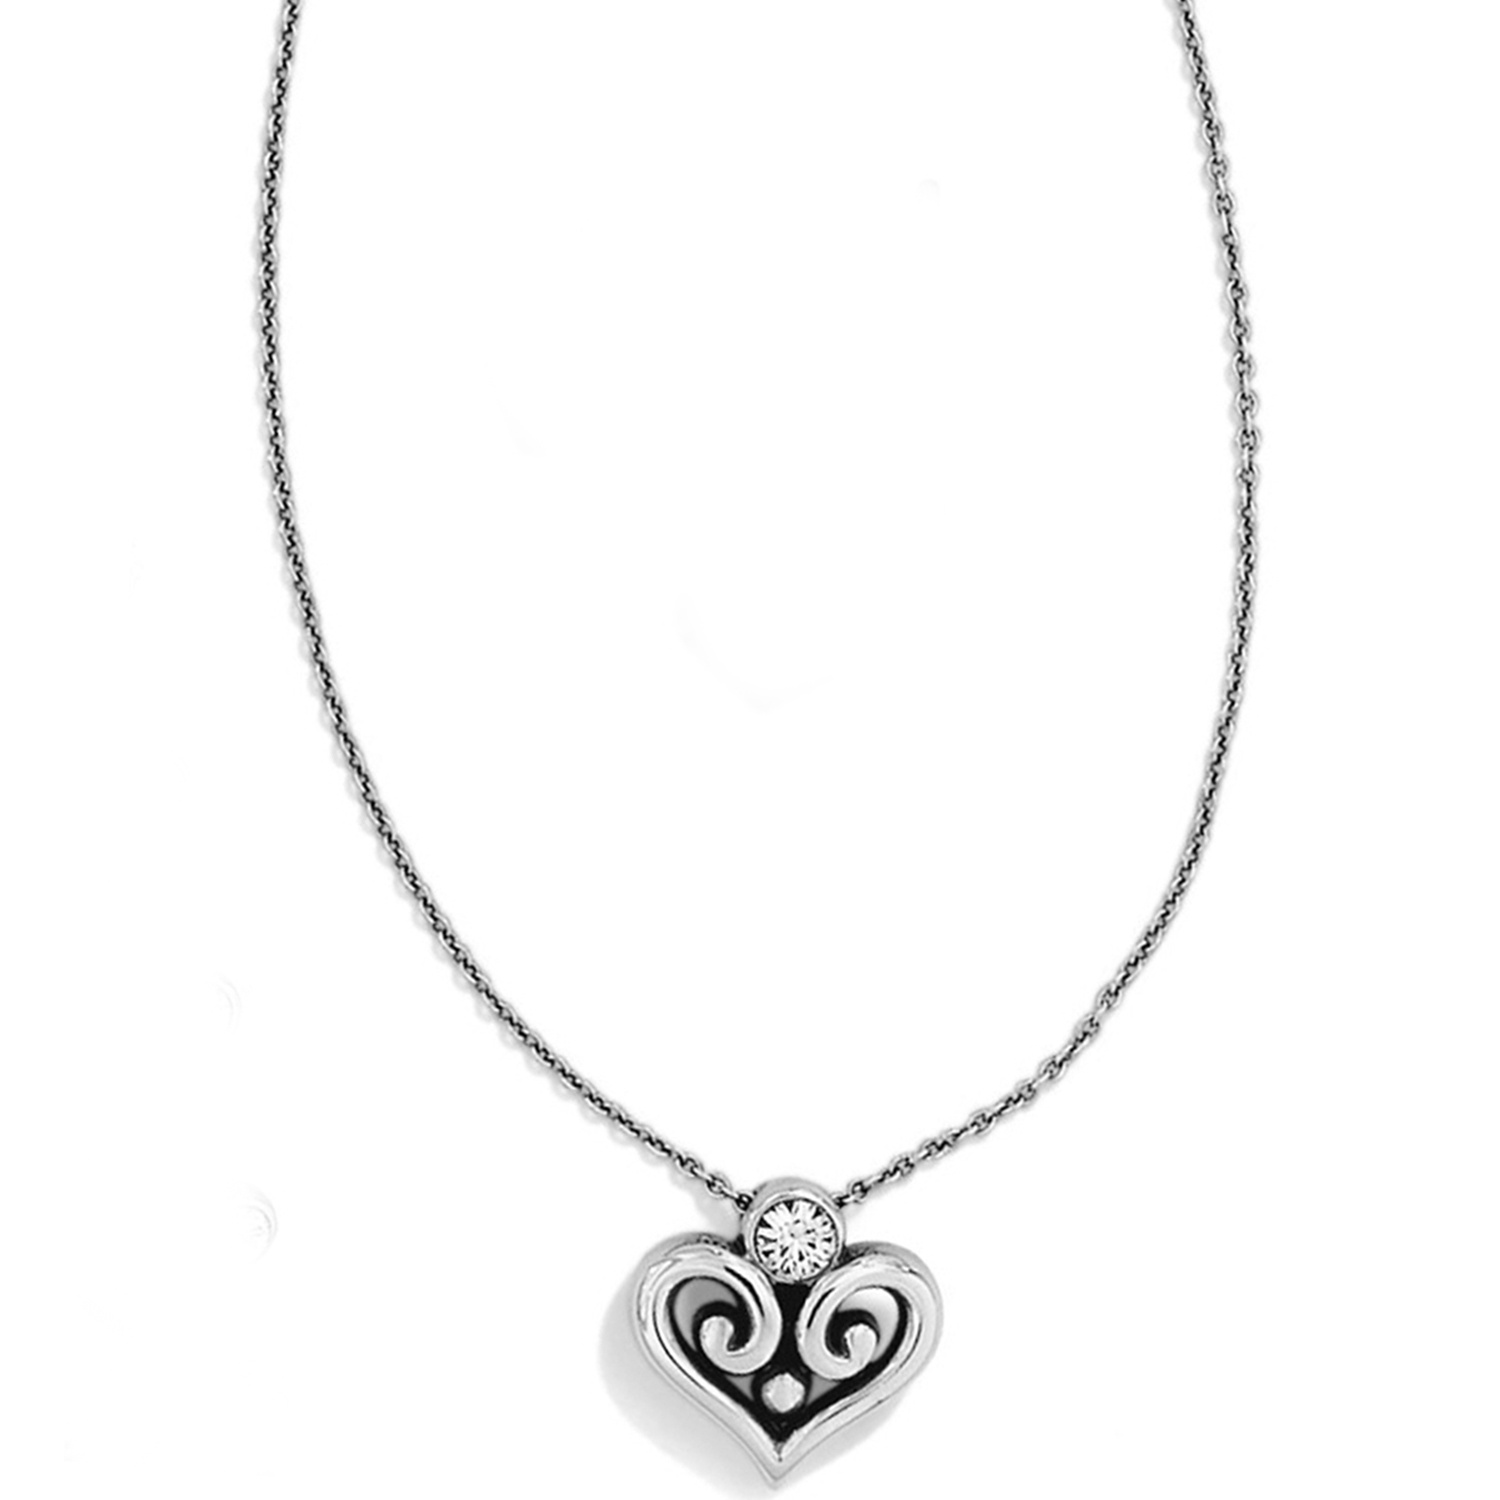 notonthehighstreet original by com double j jandsjewellery heart jewellery product s necklace